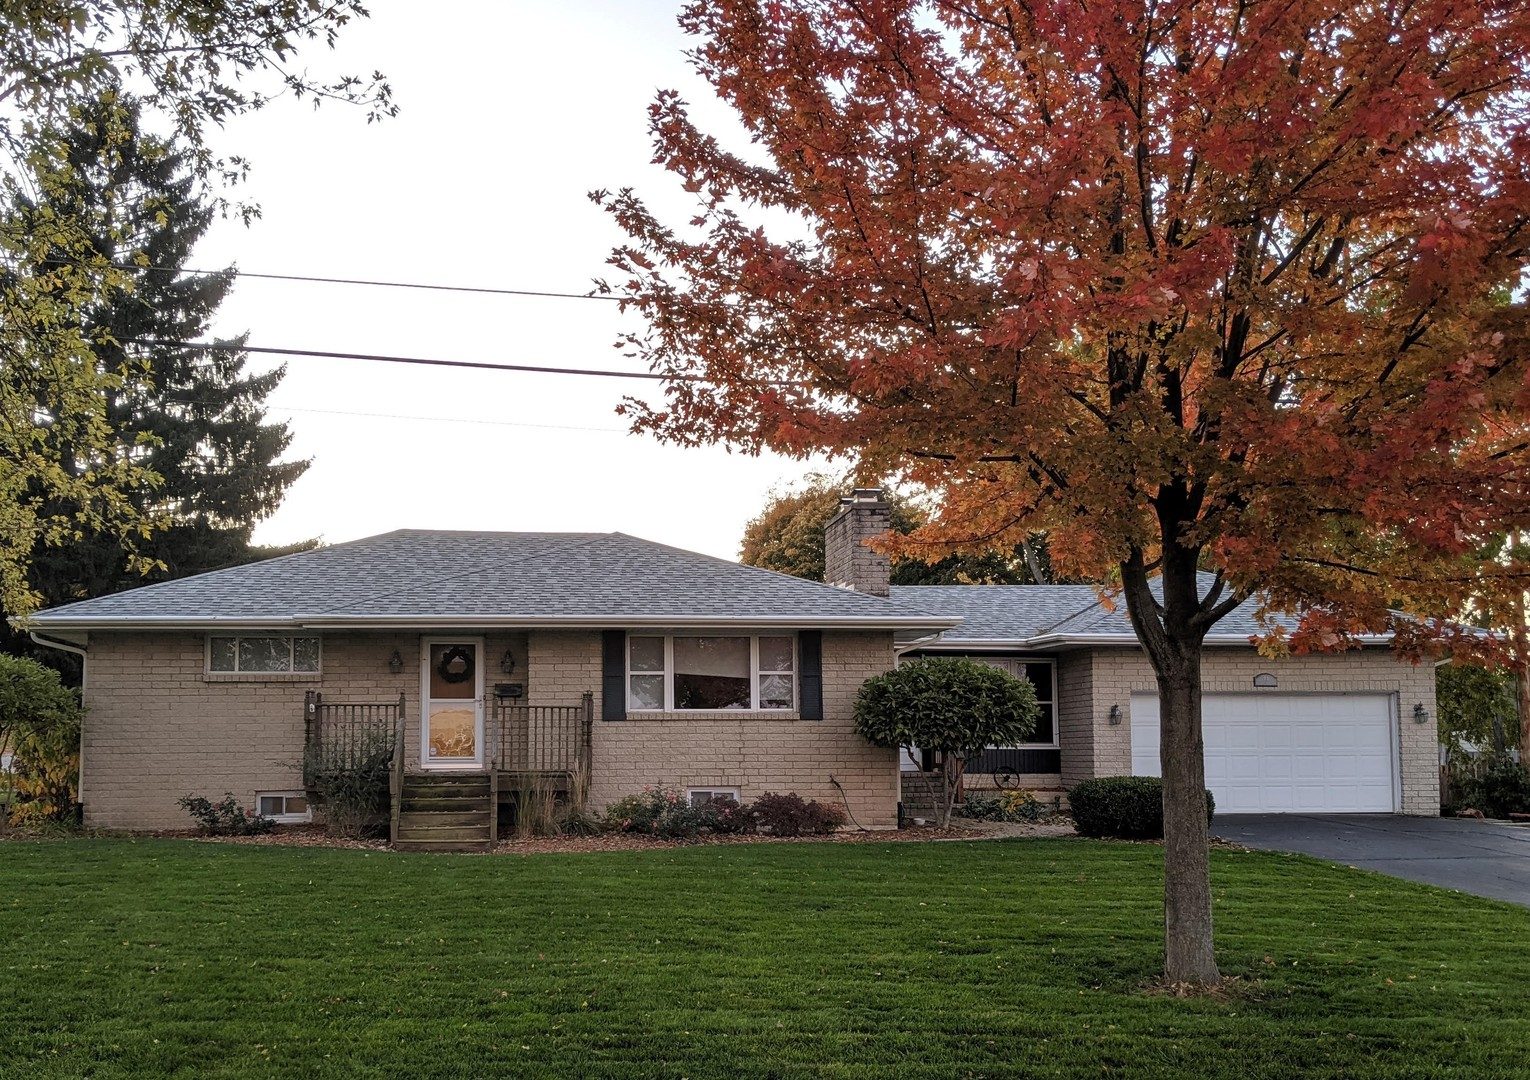 Photo for 15 S 10th Street, St. Charles, IL 60174 (MLS # 10578700)